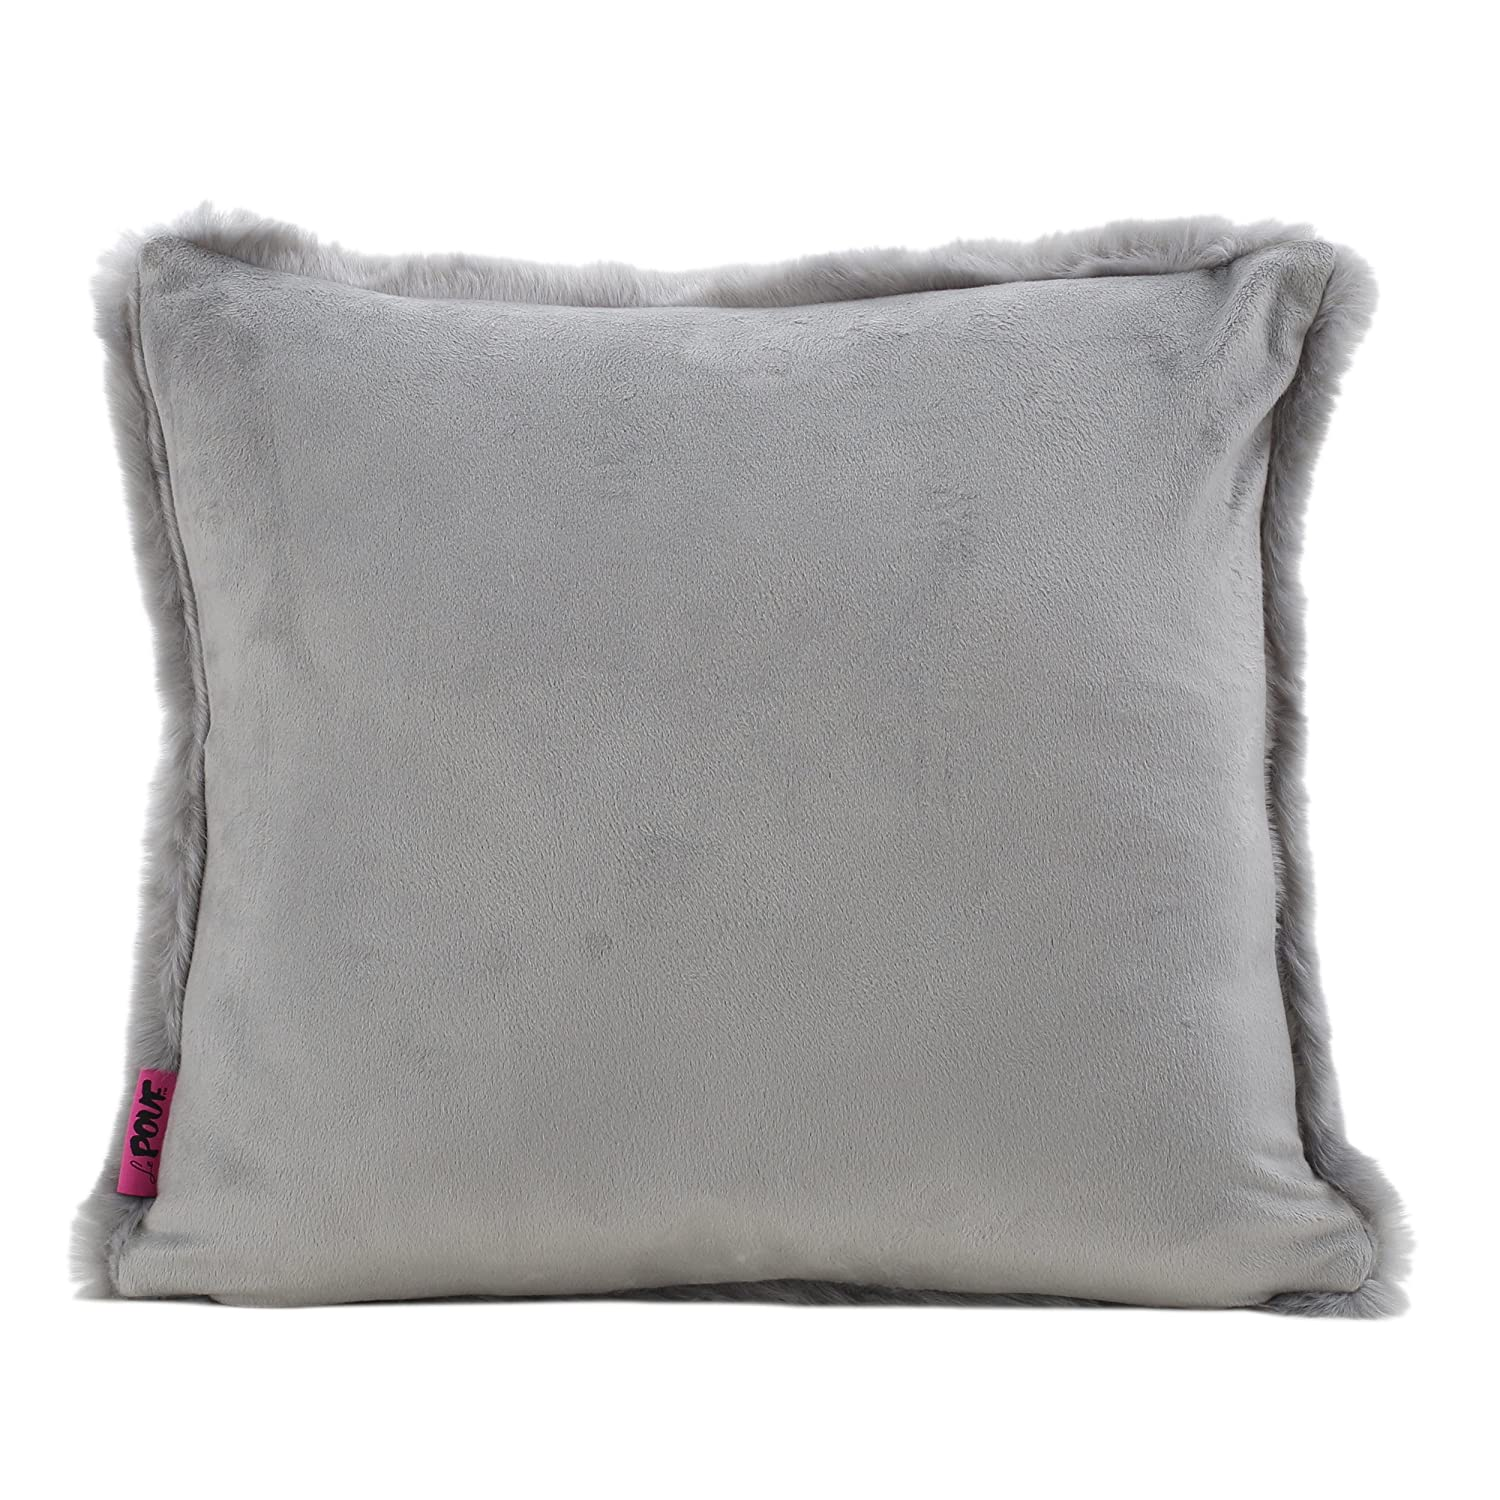 Ellison Sterling Decorative Faux Fur Fabric Throw Pillow | Ideal for The Living Room or Bedroom Set of 2 Plush Texture GDF Studio 299803